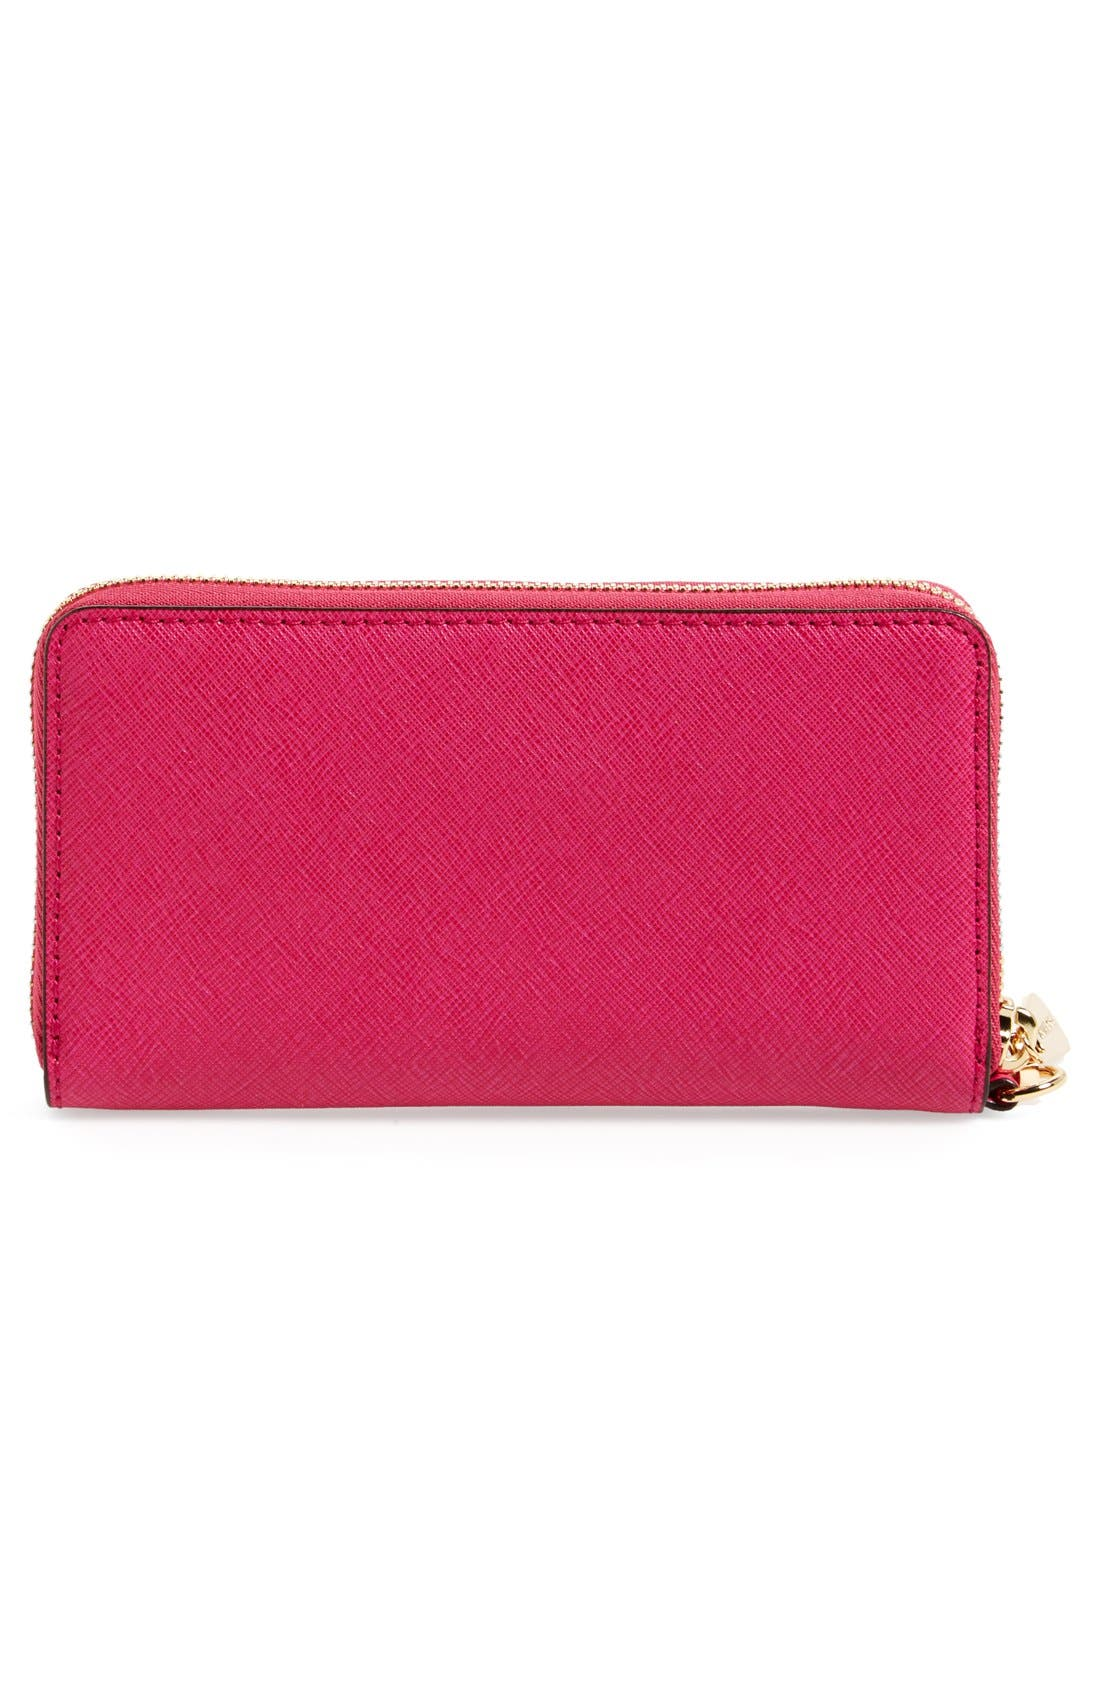 Alternate Image 3  - MICHAEL Michael Kors 'Large Jet Set' Saffiano Leather Phone Wristlet